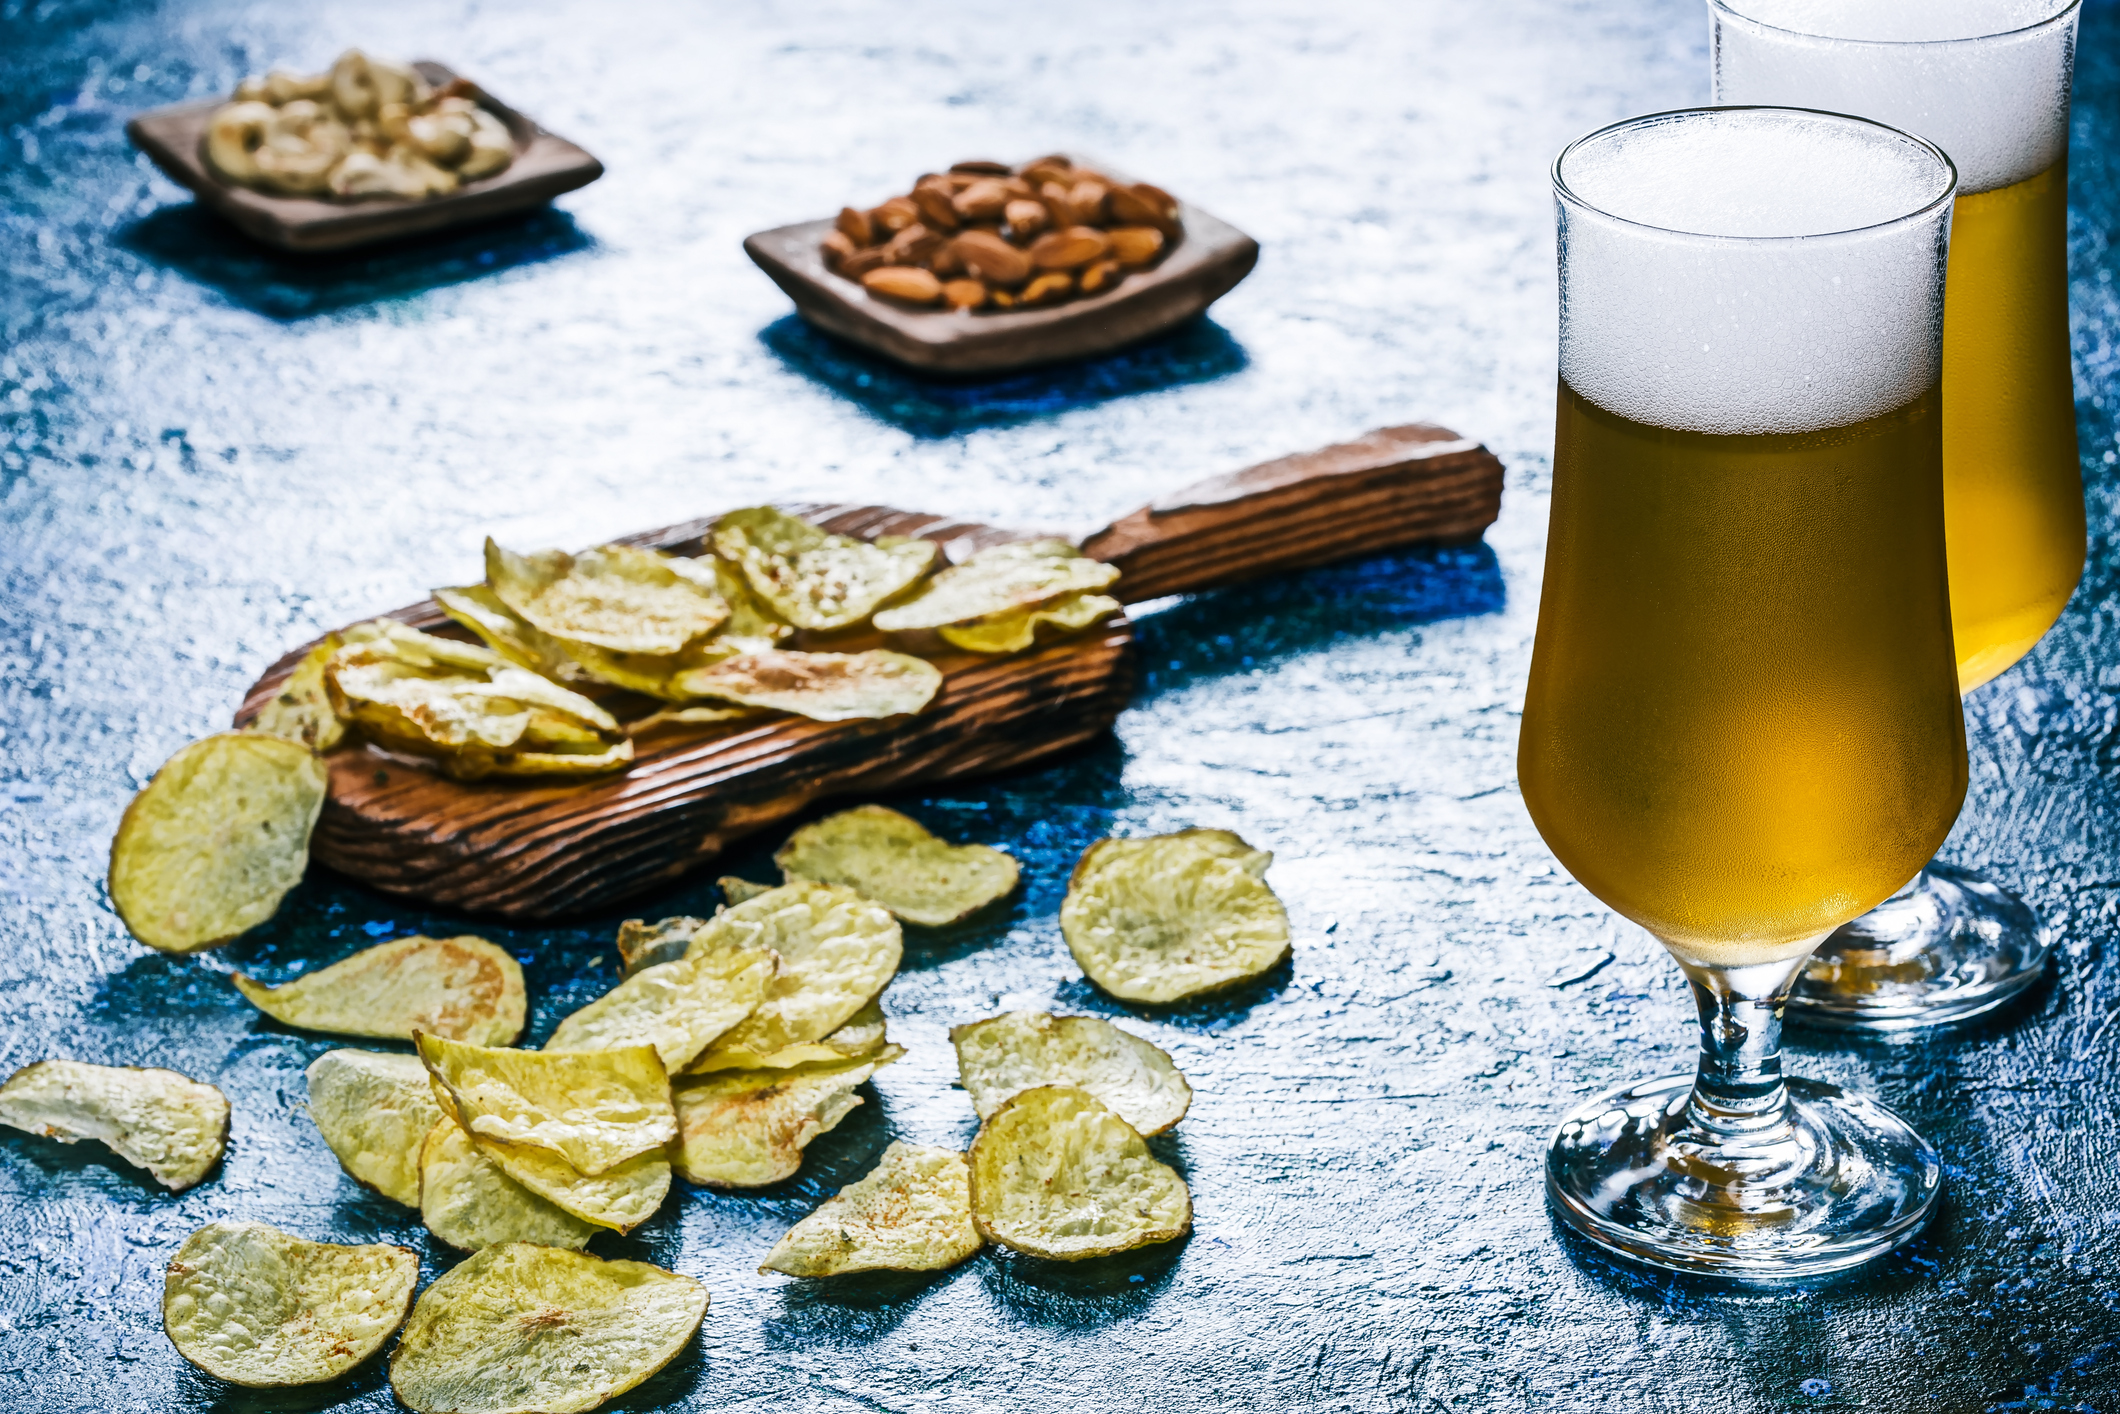 Beer and snack over glossy blue